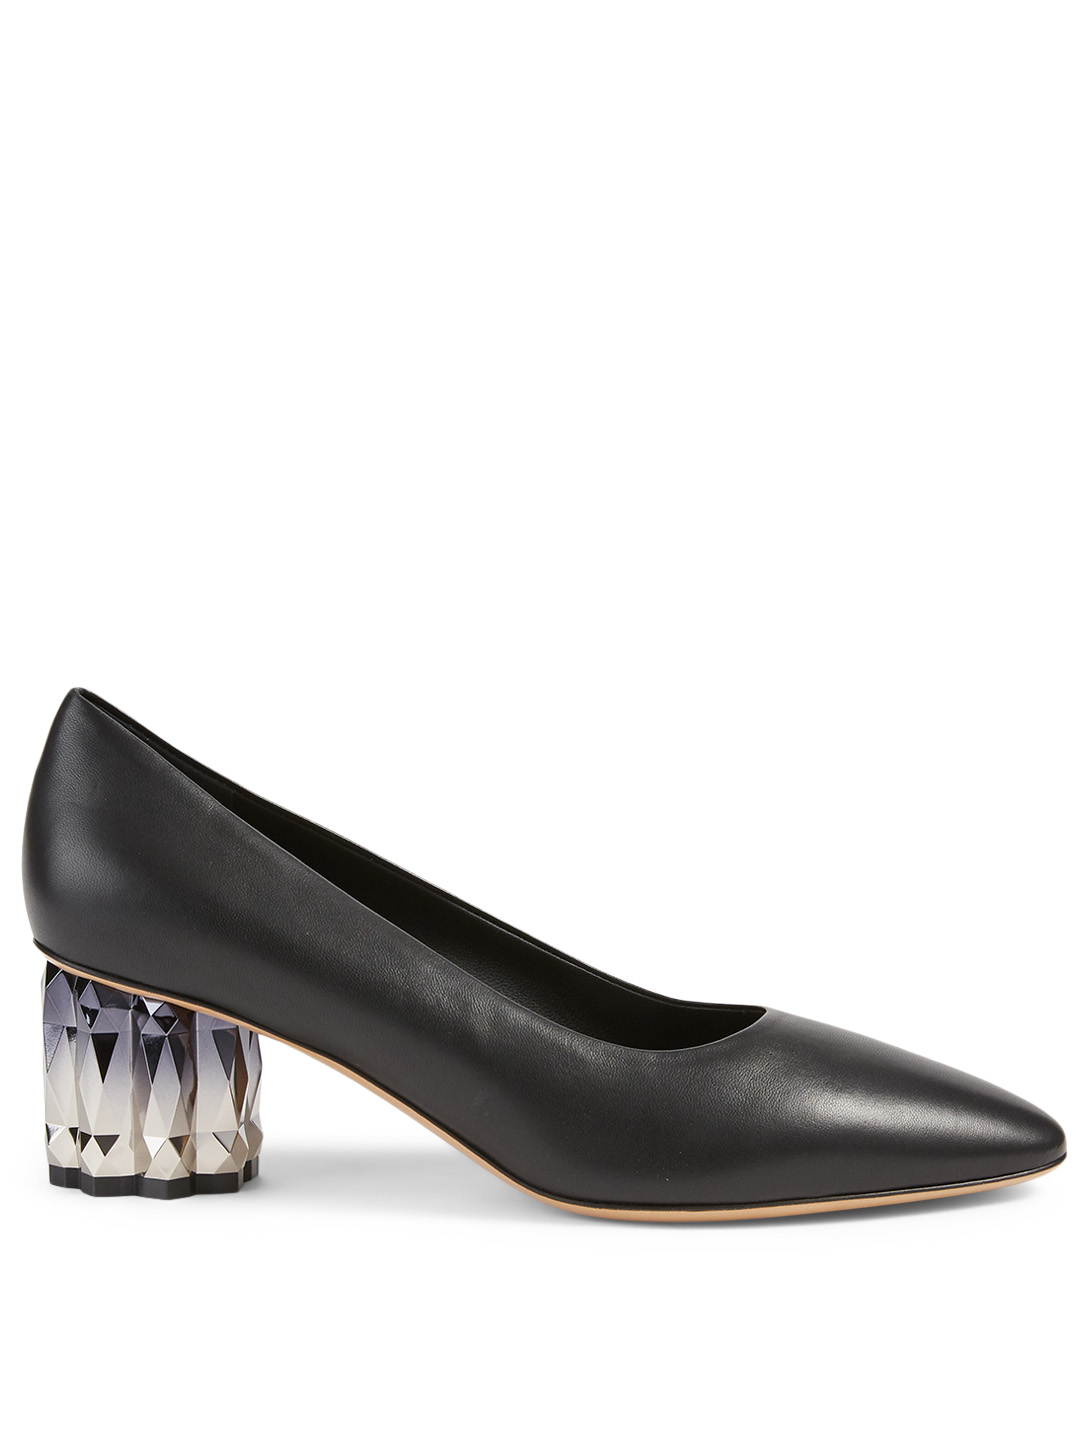 SALVATORE FERRAGAMO Amina Leather Refracted-Heel Pumps Women's Black